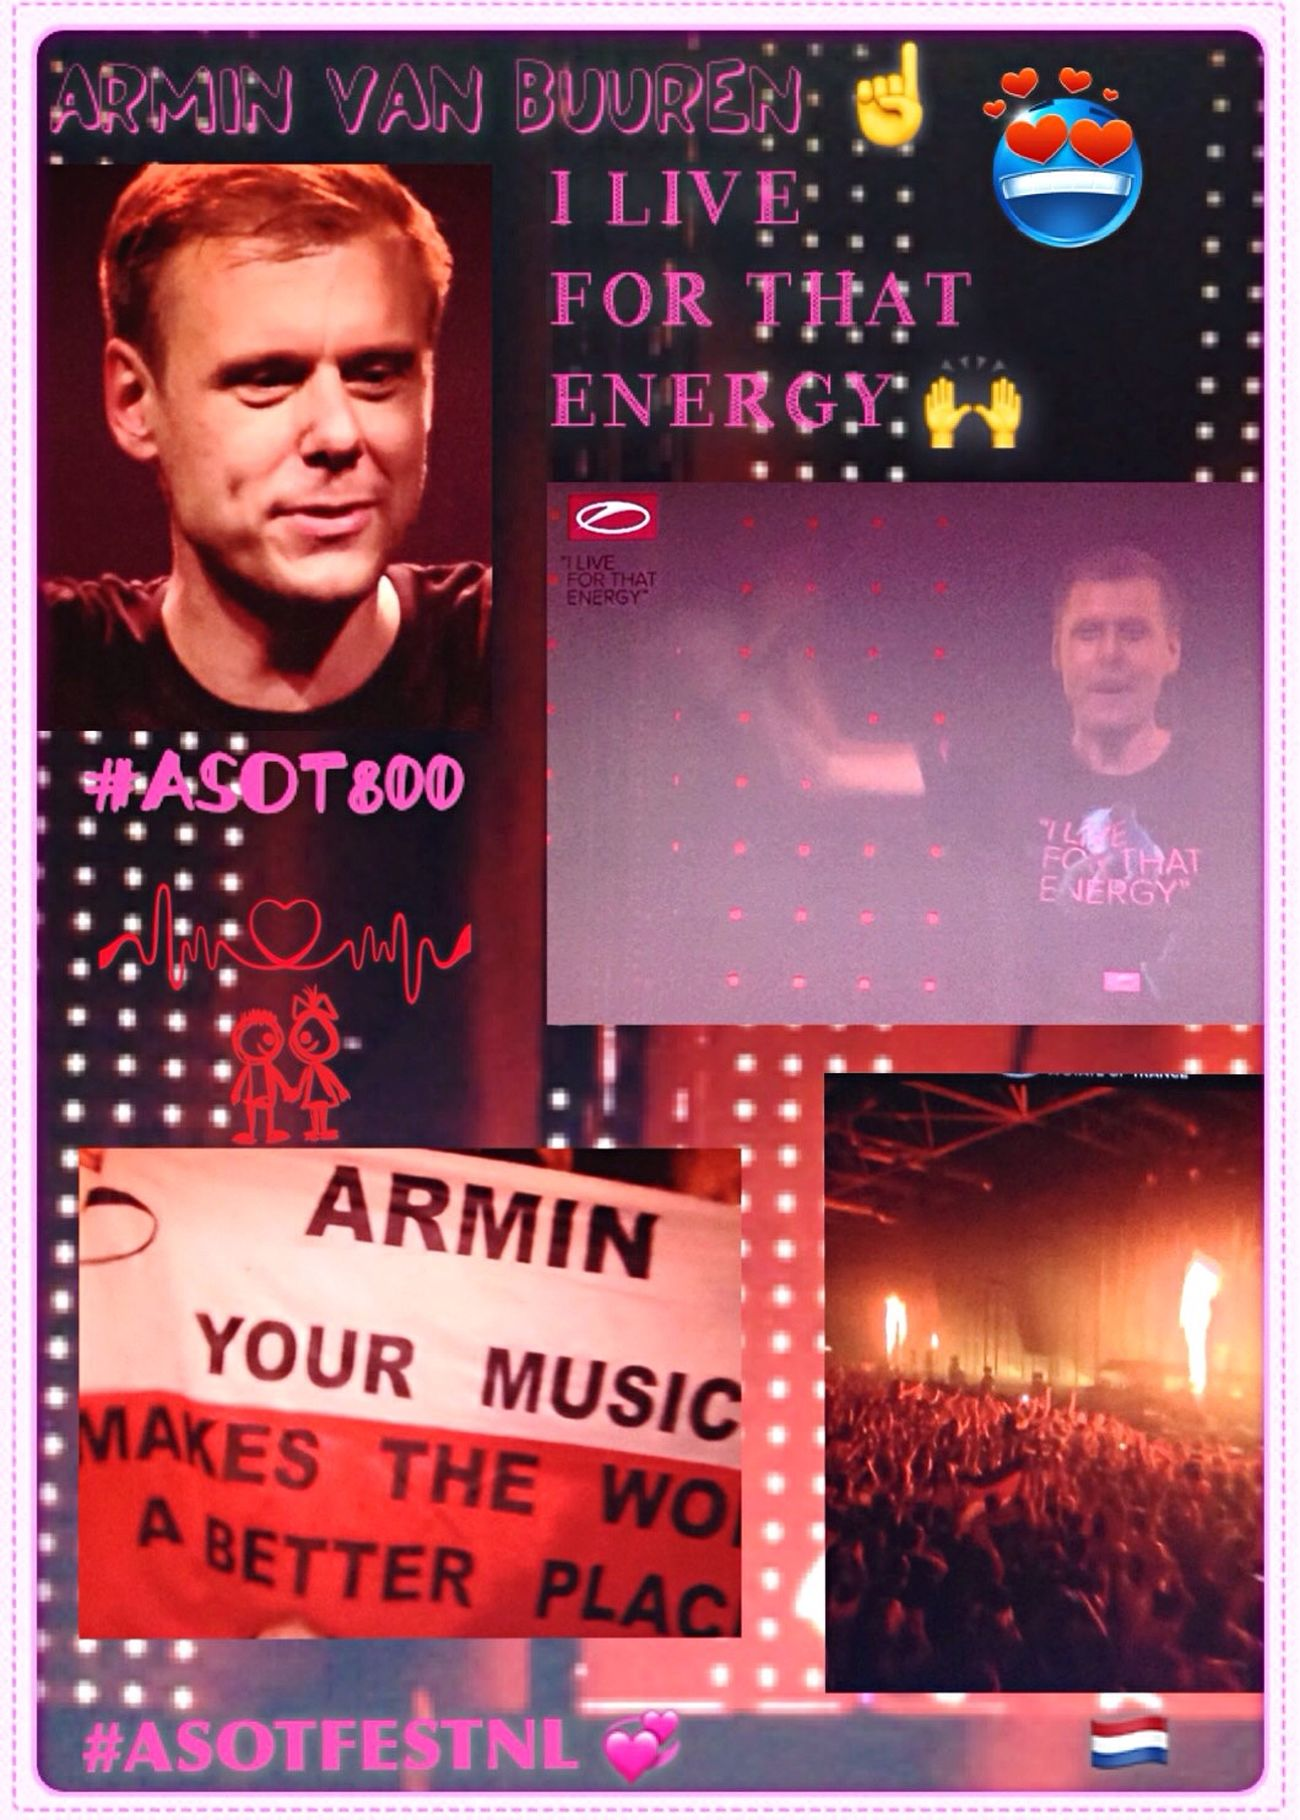 I Loved Your Energy with ASOT 800 A State Of Trance Festival Utrecht 🙌 💞 ♬\❤️ 🇳🇱 ❤️/♬ 💞 🙌 Thank You So Much my Idol Armin Van Buuren 🙏🏻 ☝🏻️ 🙏🏻 ASOTFESTNL ❤️ 💙